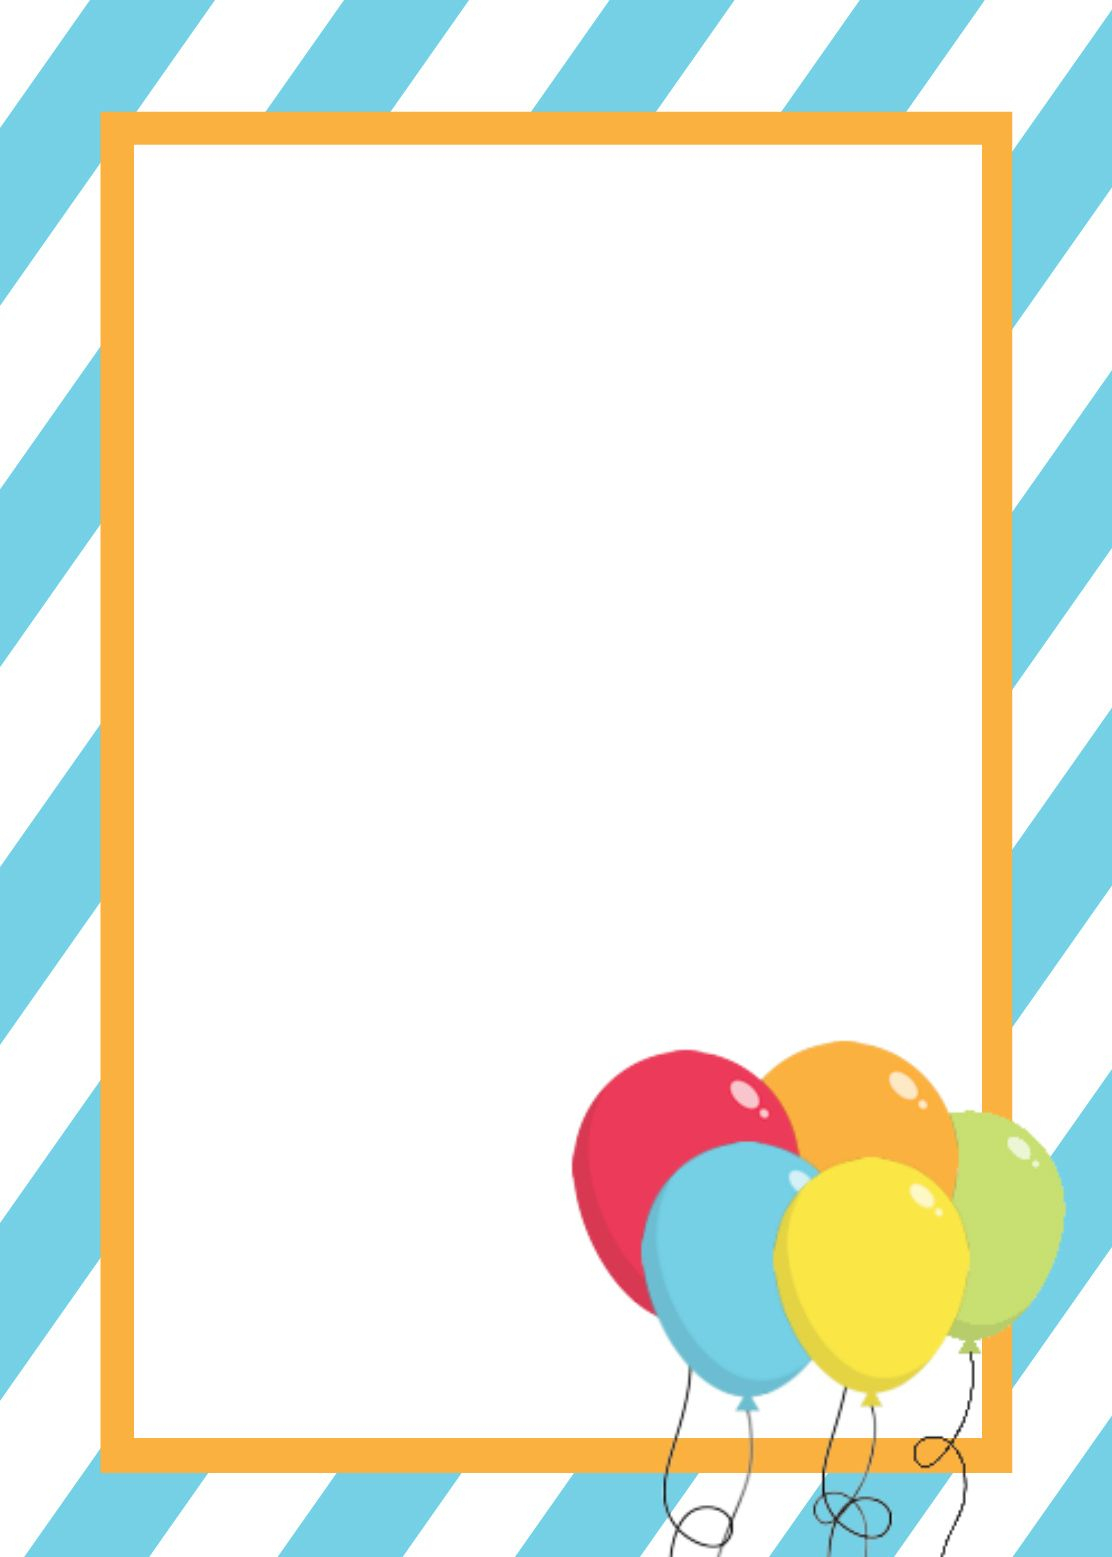 Free Printable Birthday Invitation Templates | Birthday Ideas And - Free Printable Birthday Invitation Cards Templates